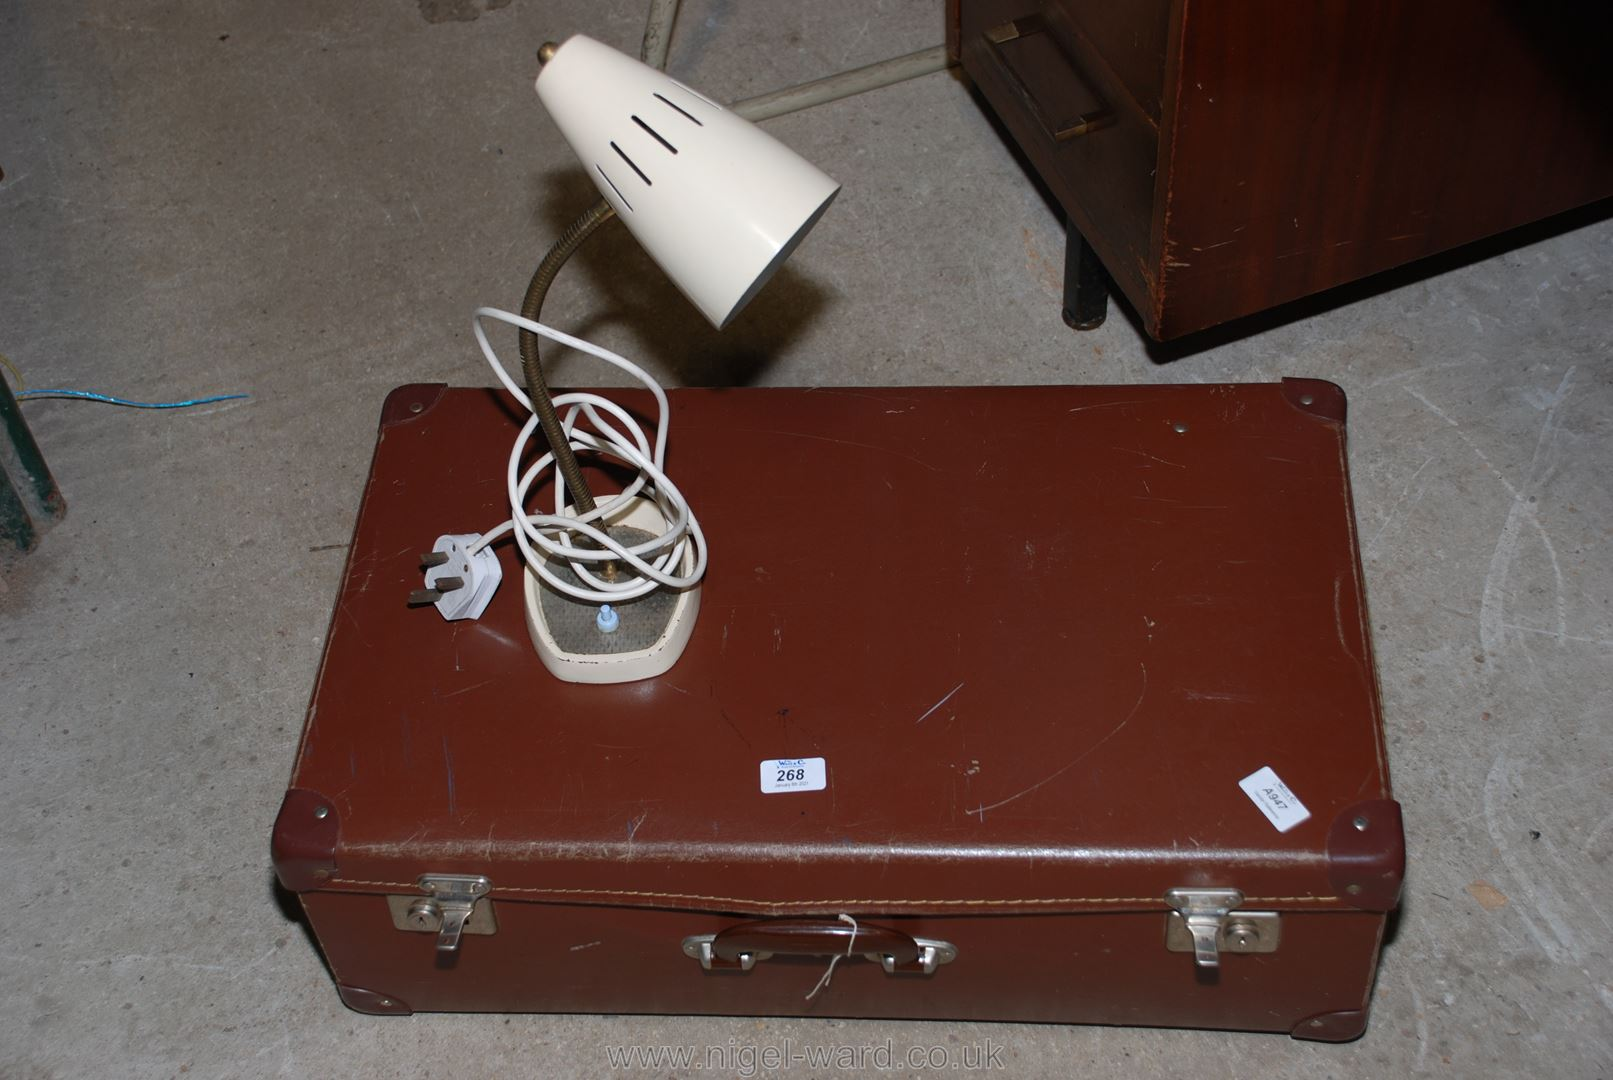 A suitcase and a desk lamp.